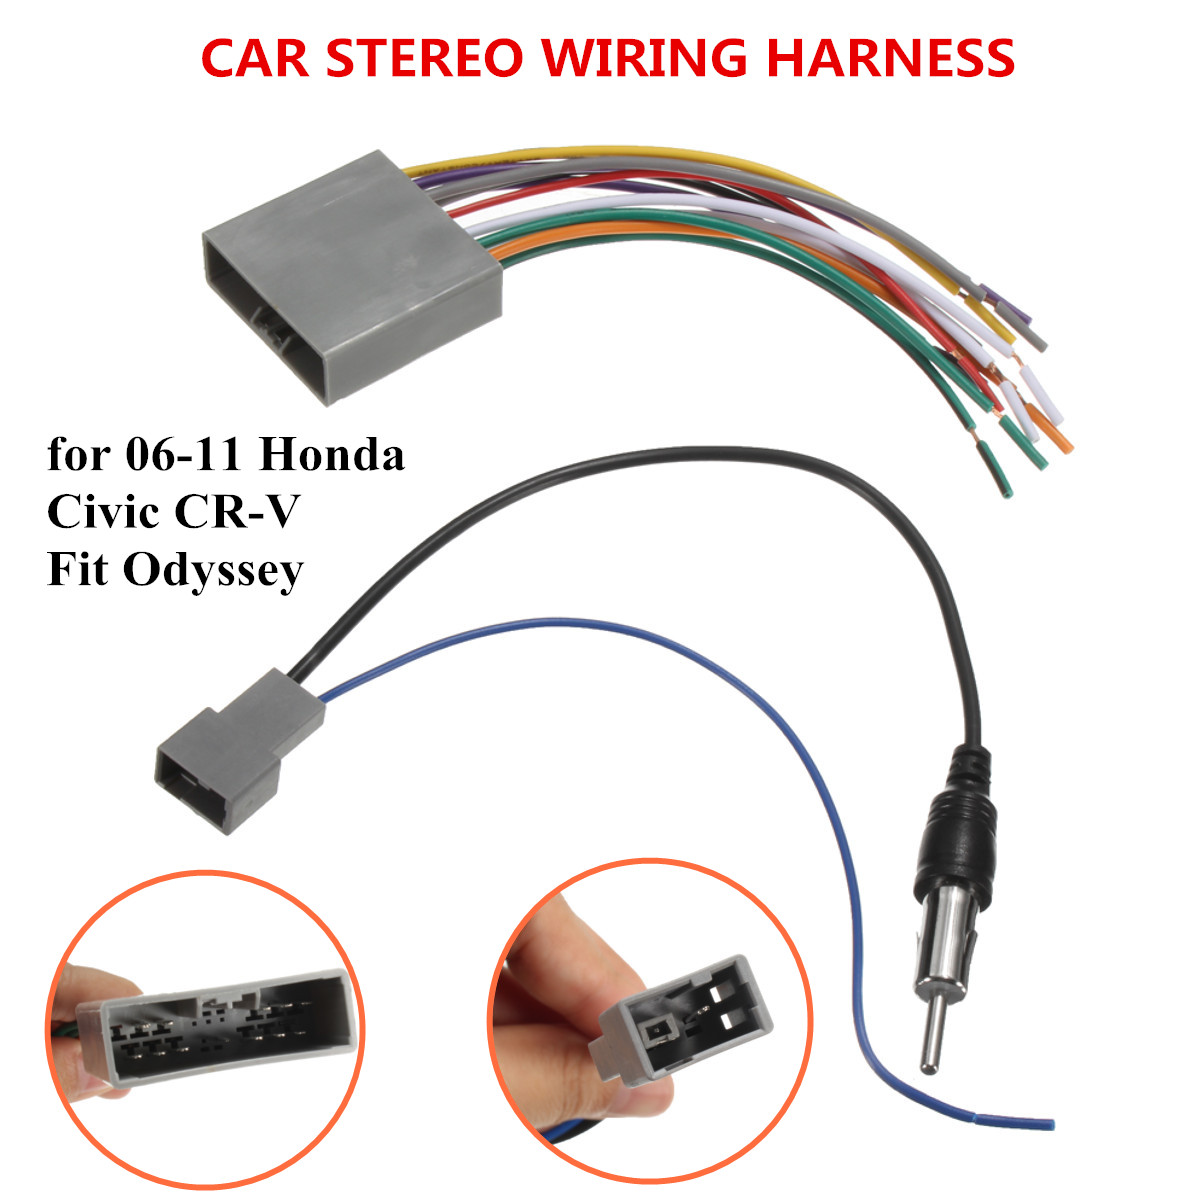 2004 honda odyssey dvd wiring diagram whole house transfer switch car stereo radio player wire harness antenna for